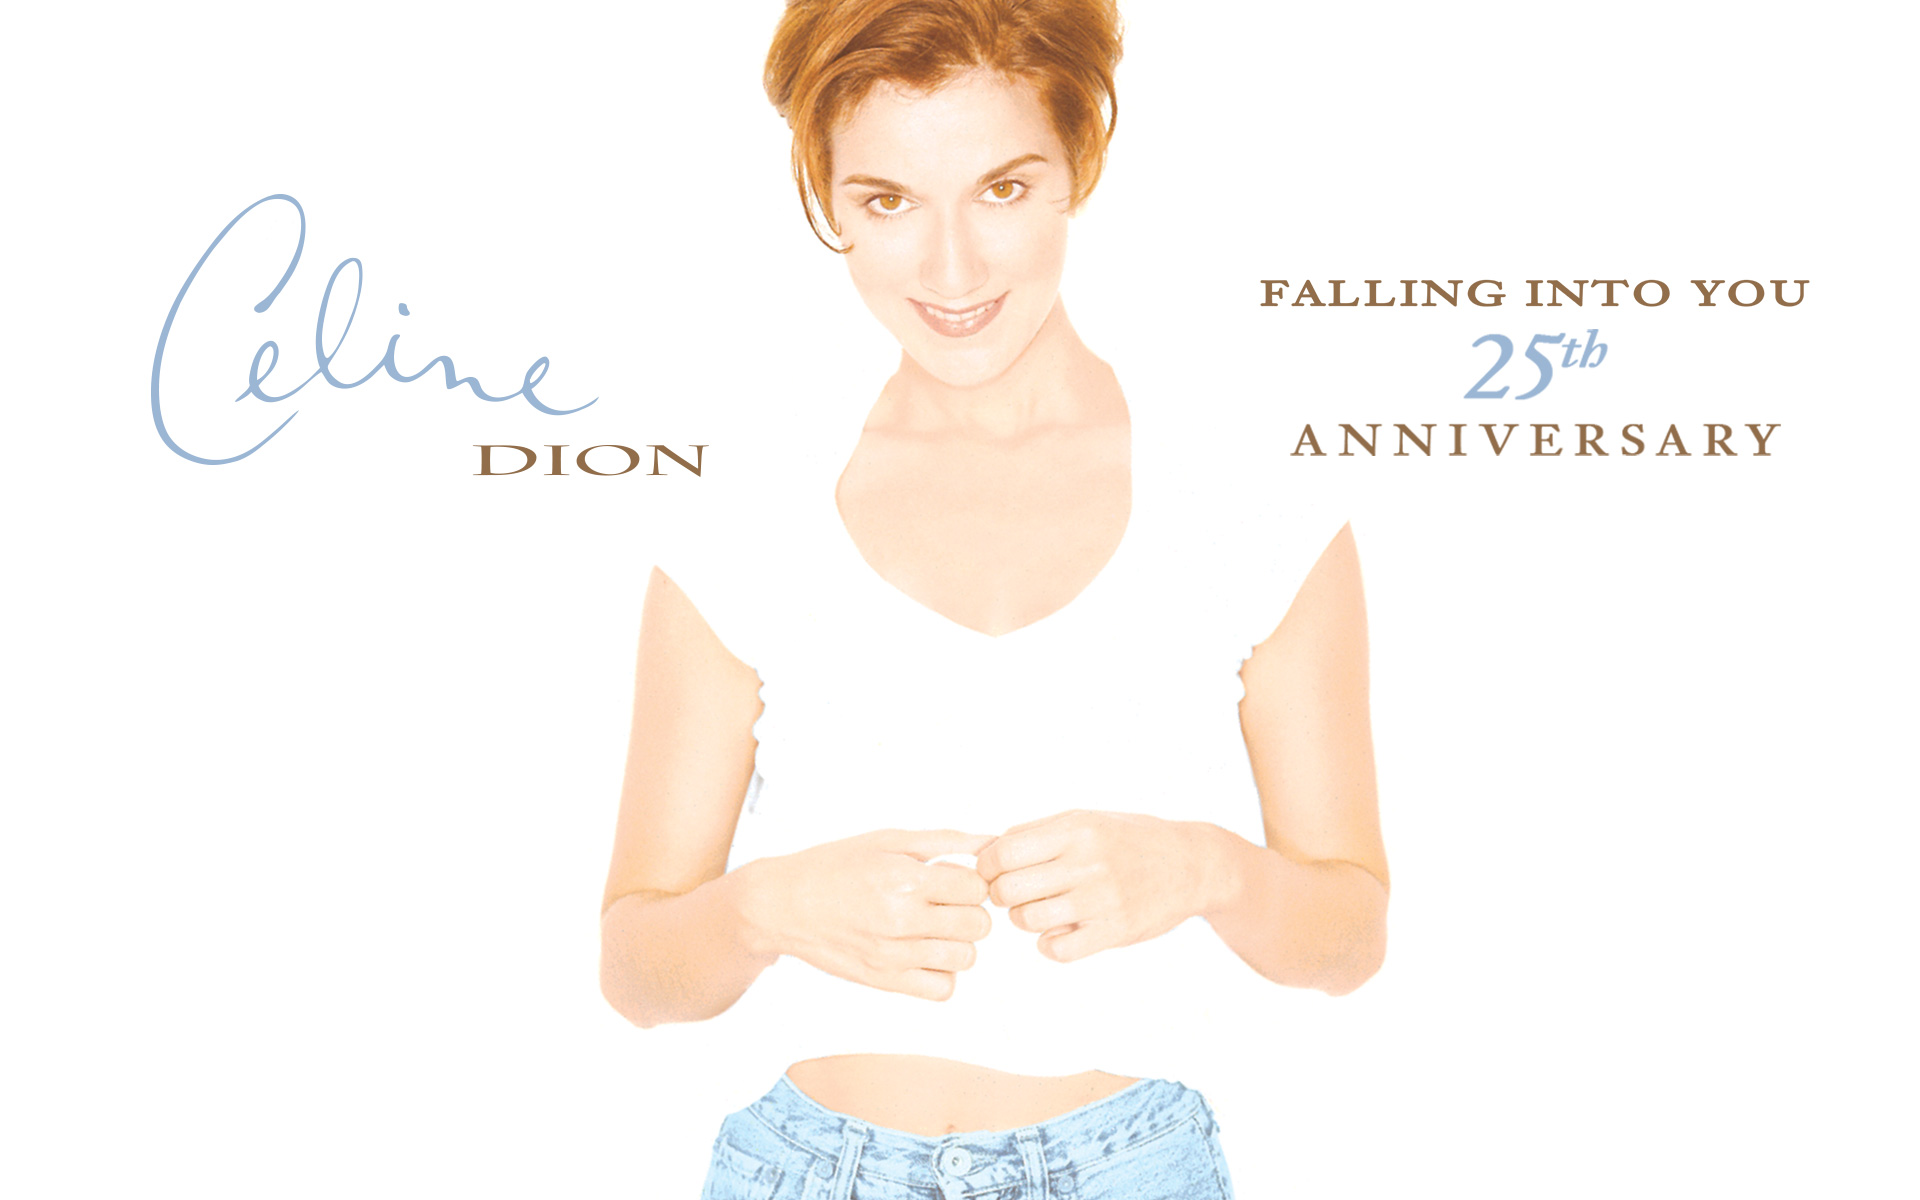 Celine Dion | Falling Into You 25th Anniversary